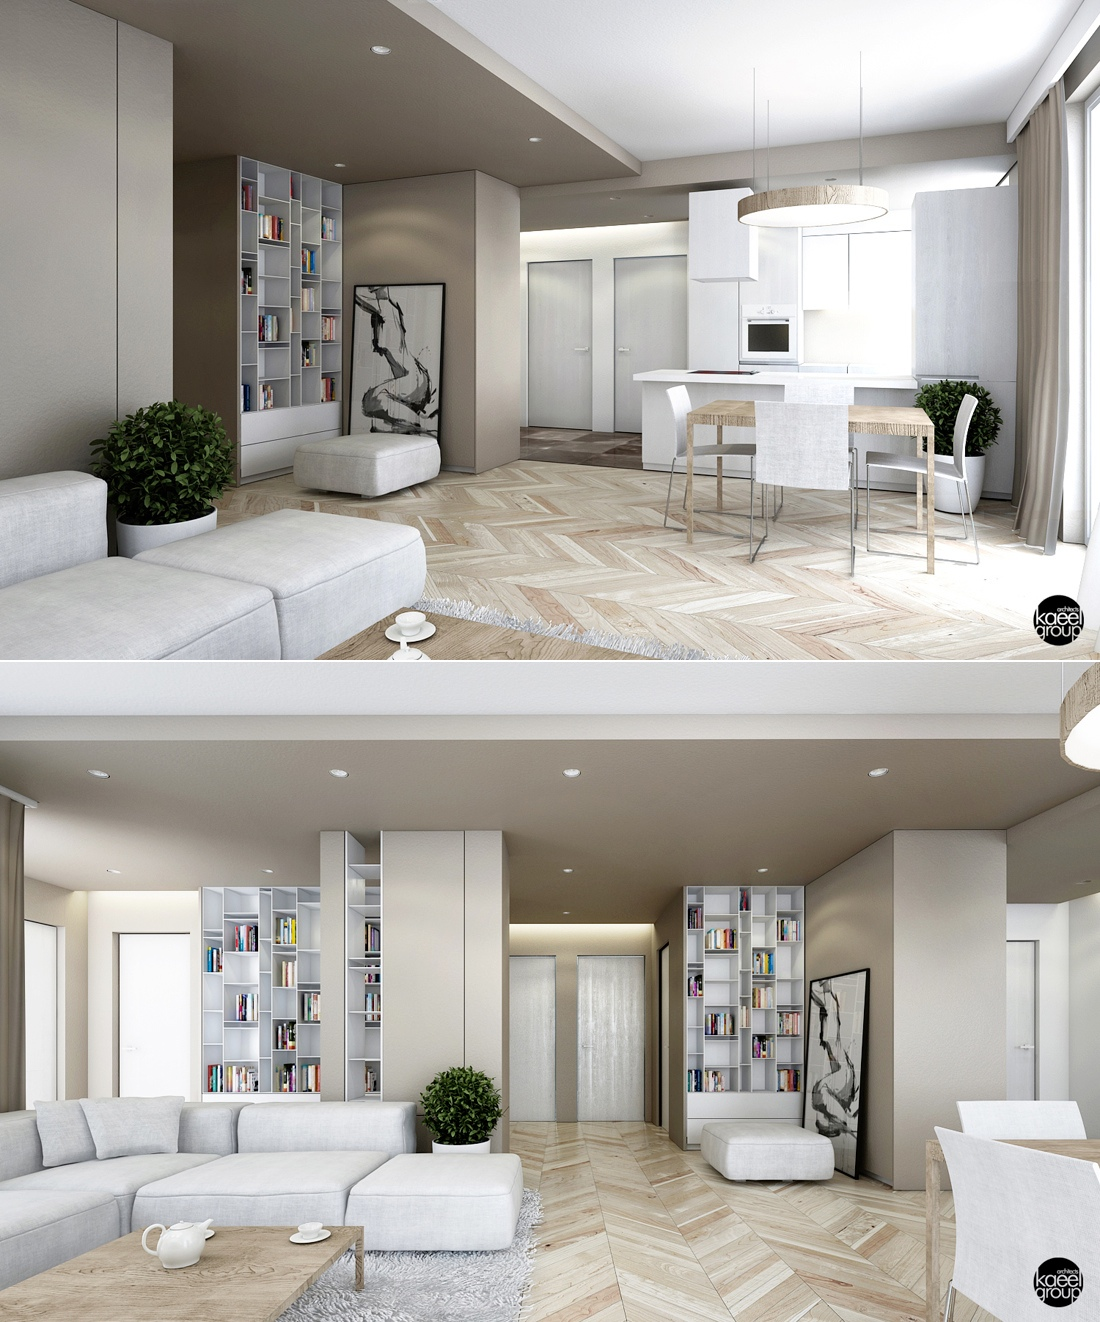 23-open-concept-apartment-interiors-for-inspiration-19